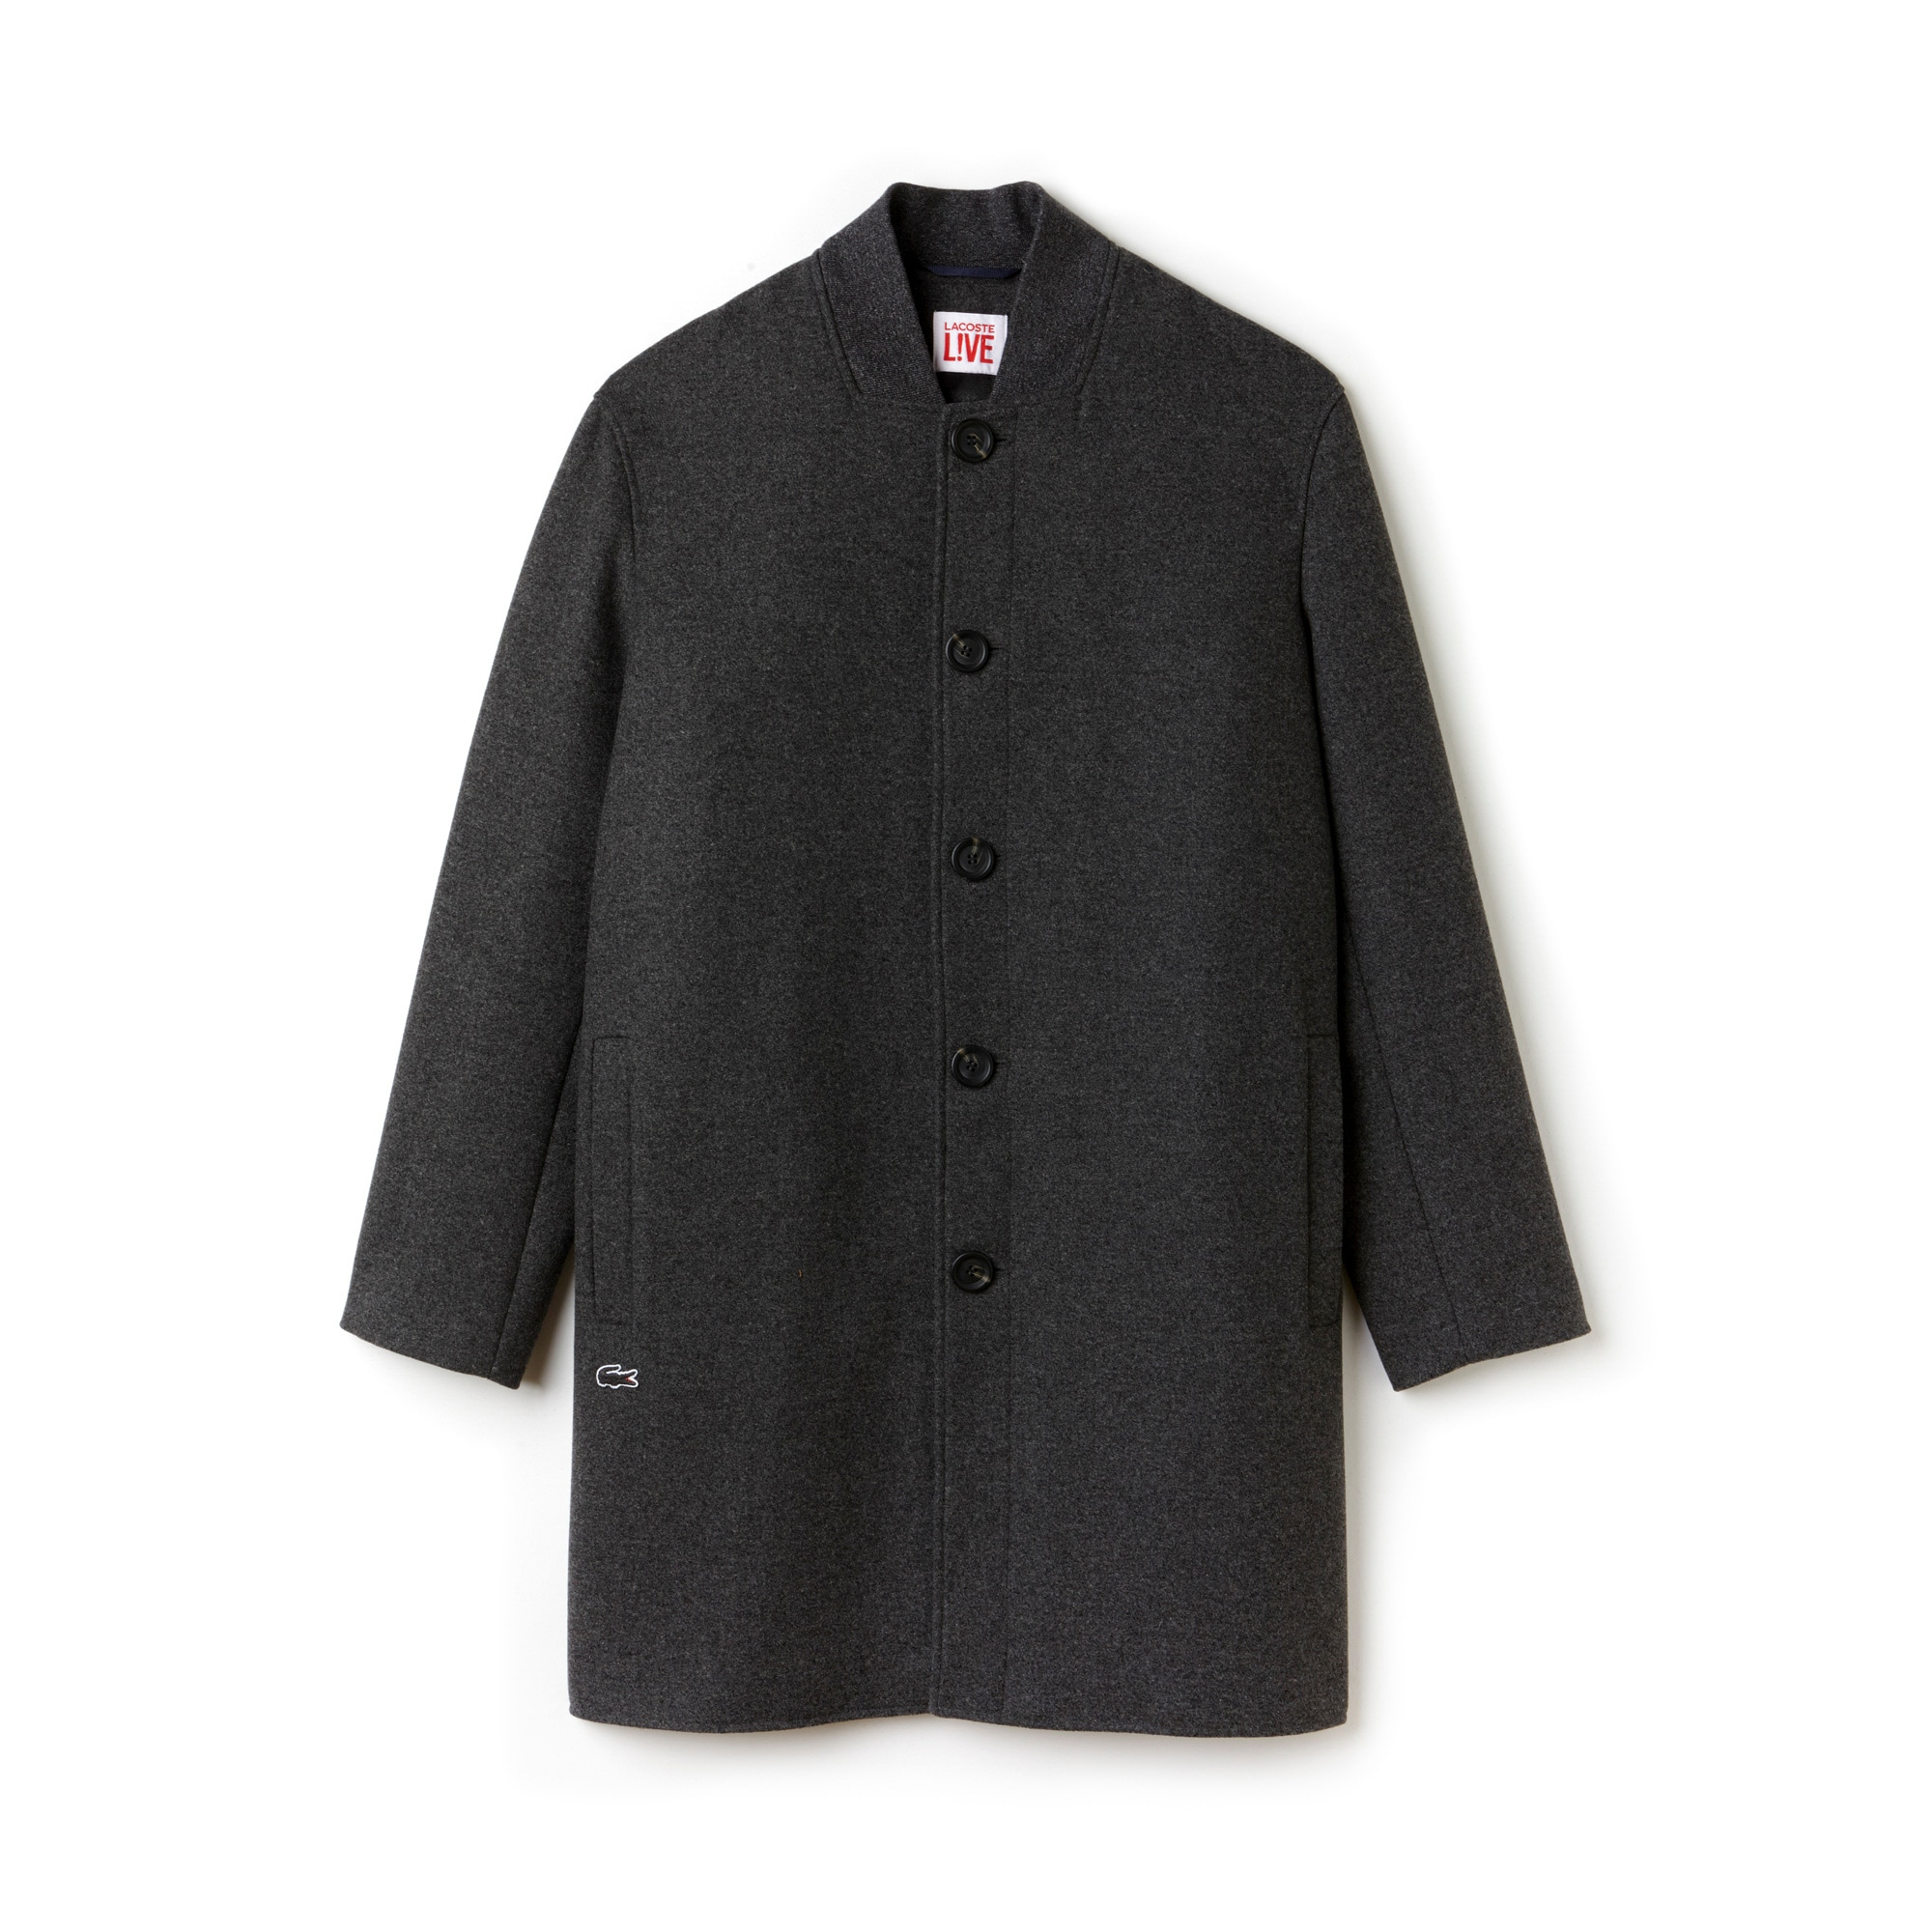 Unisex Lacoste LIVE Oversized Wool Broadcloth Coat